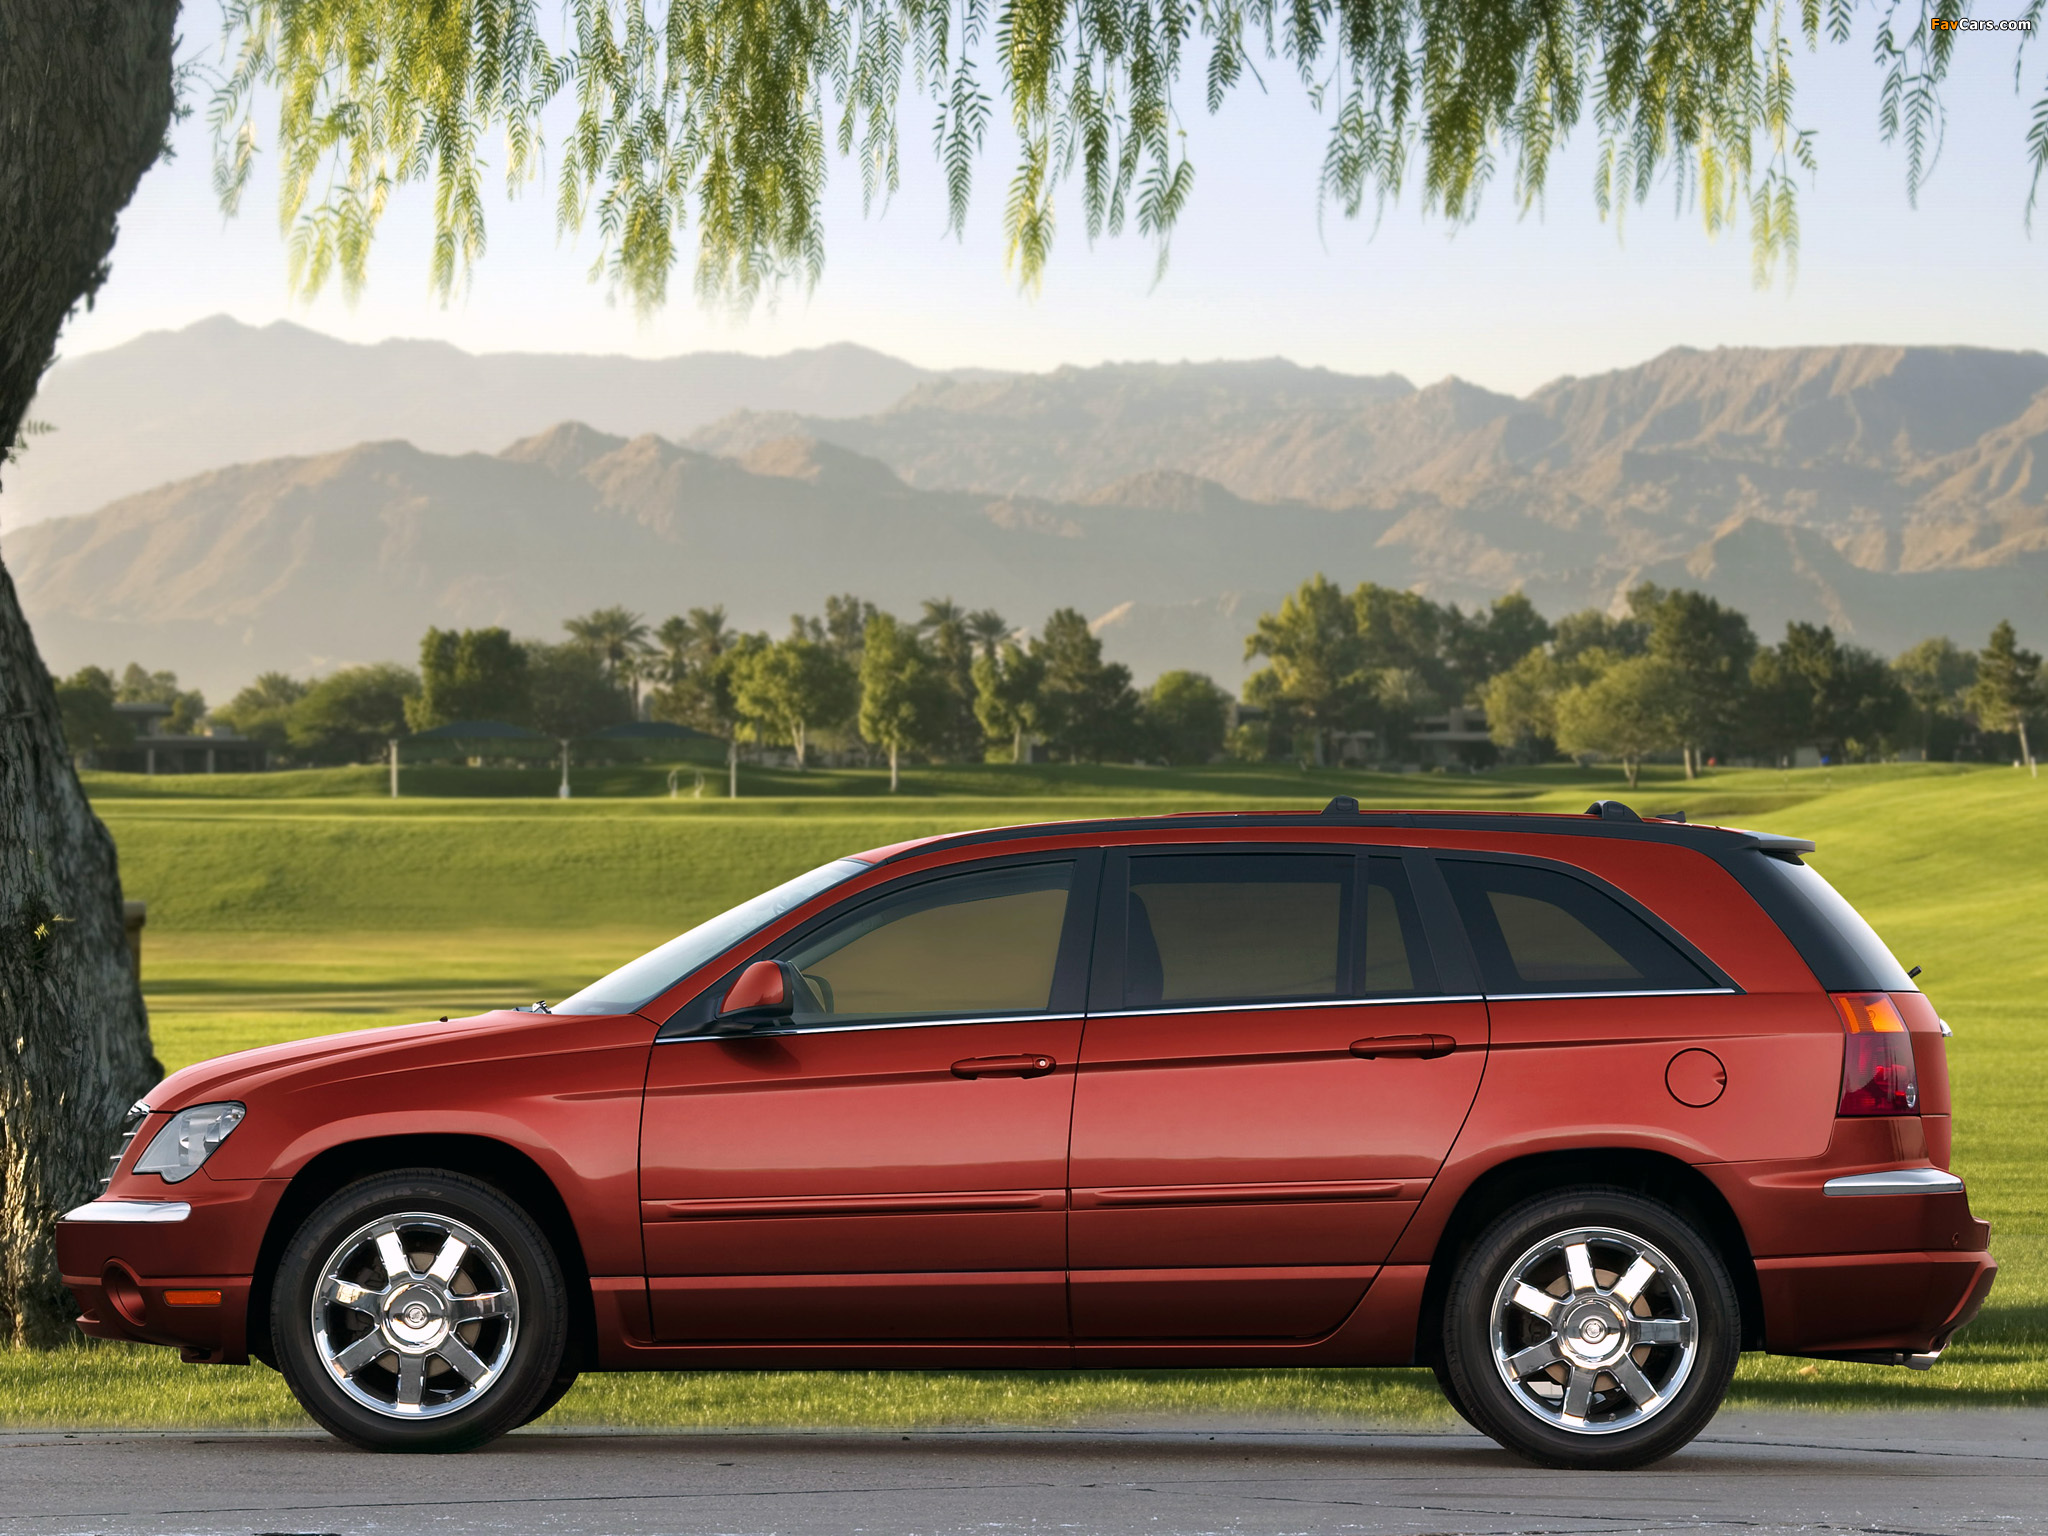 Chrysler Pacifica 2006 07 Images 2048x1536